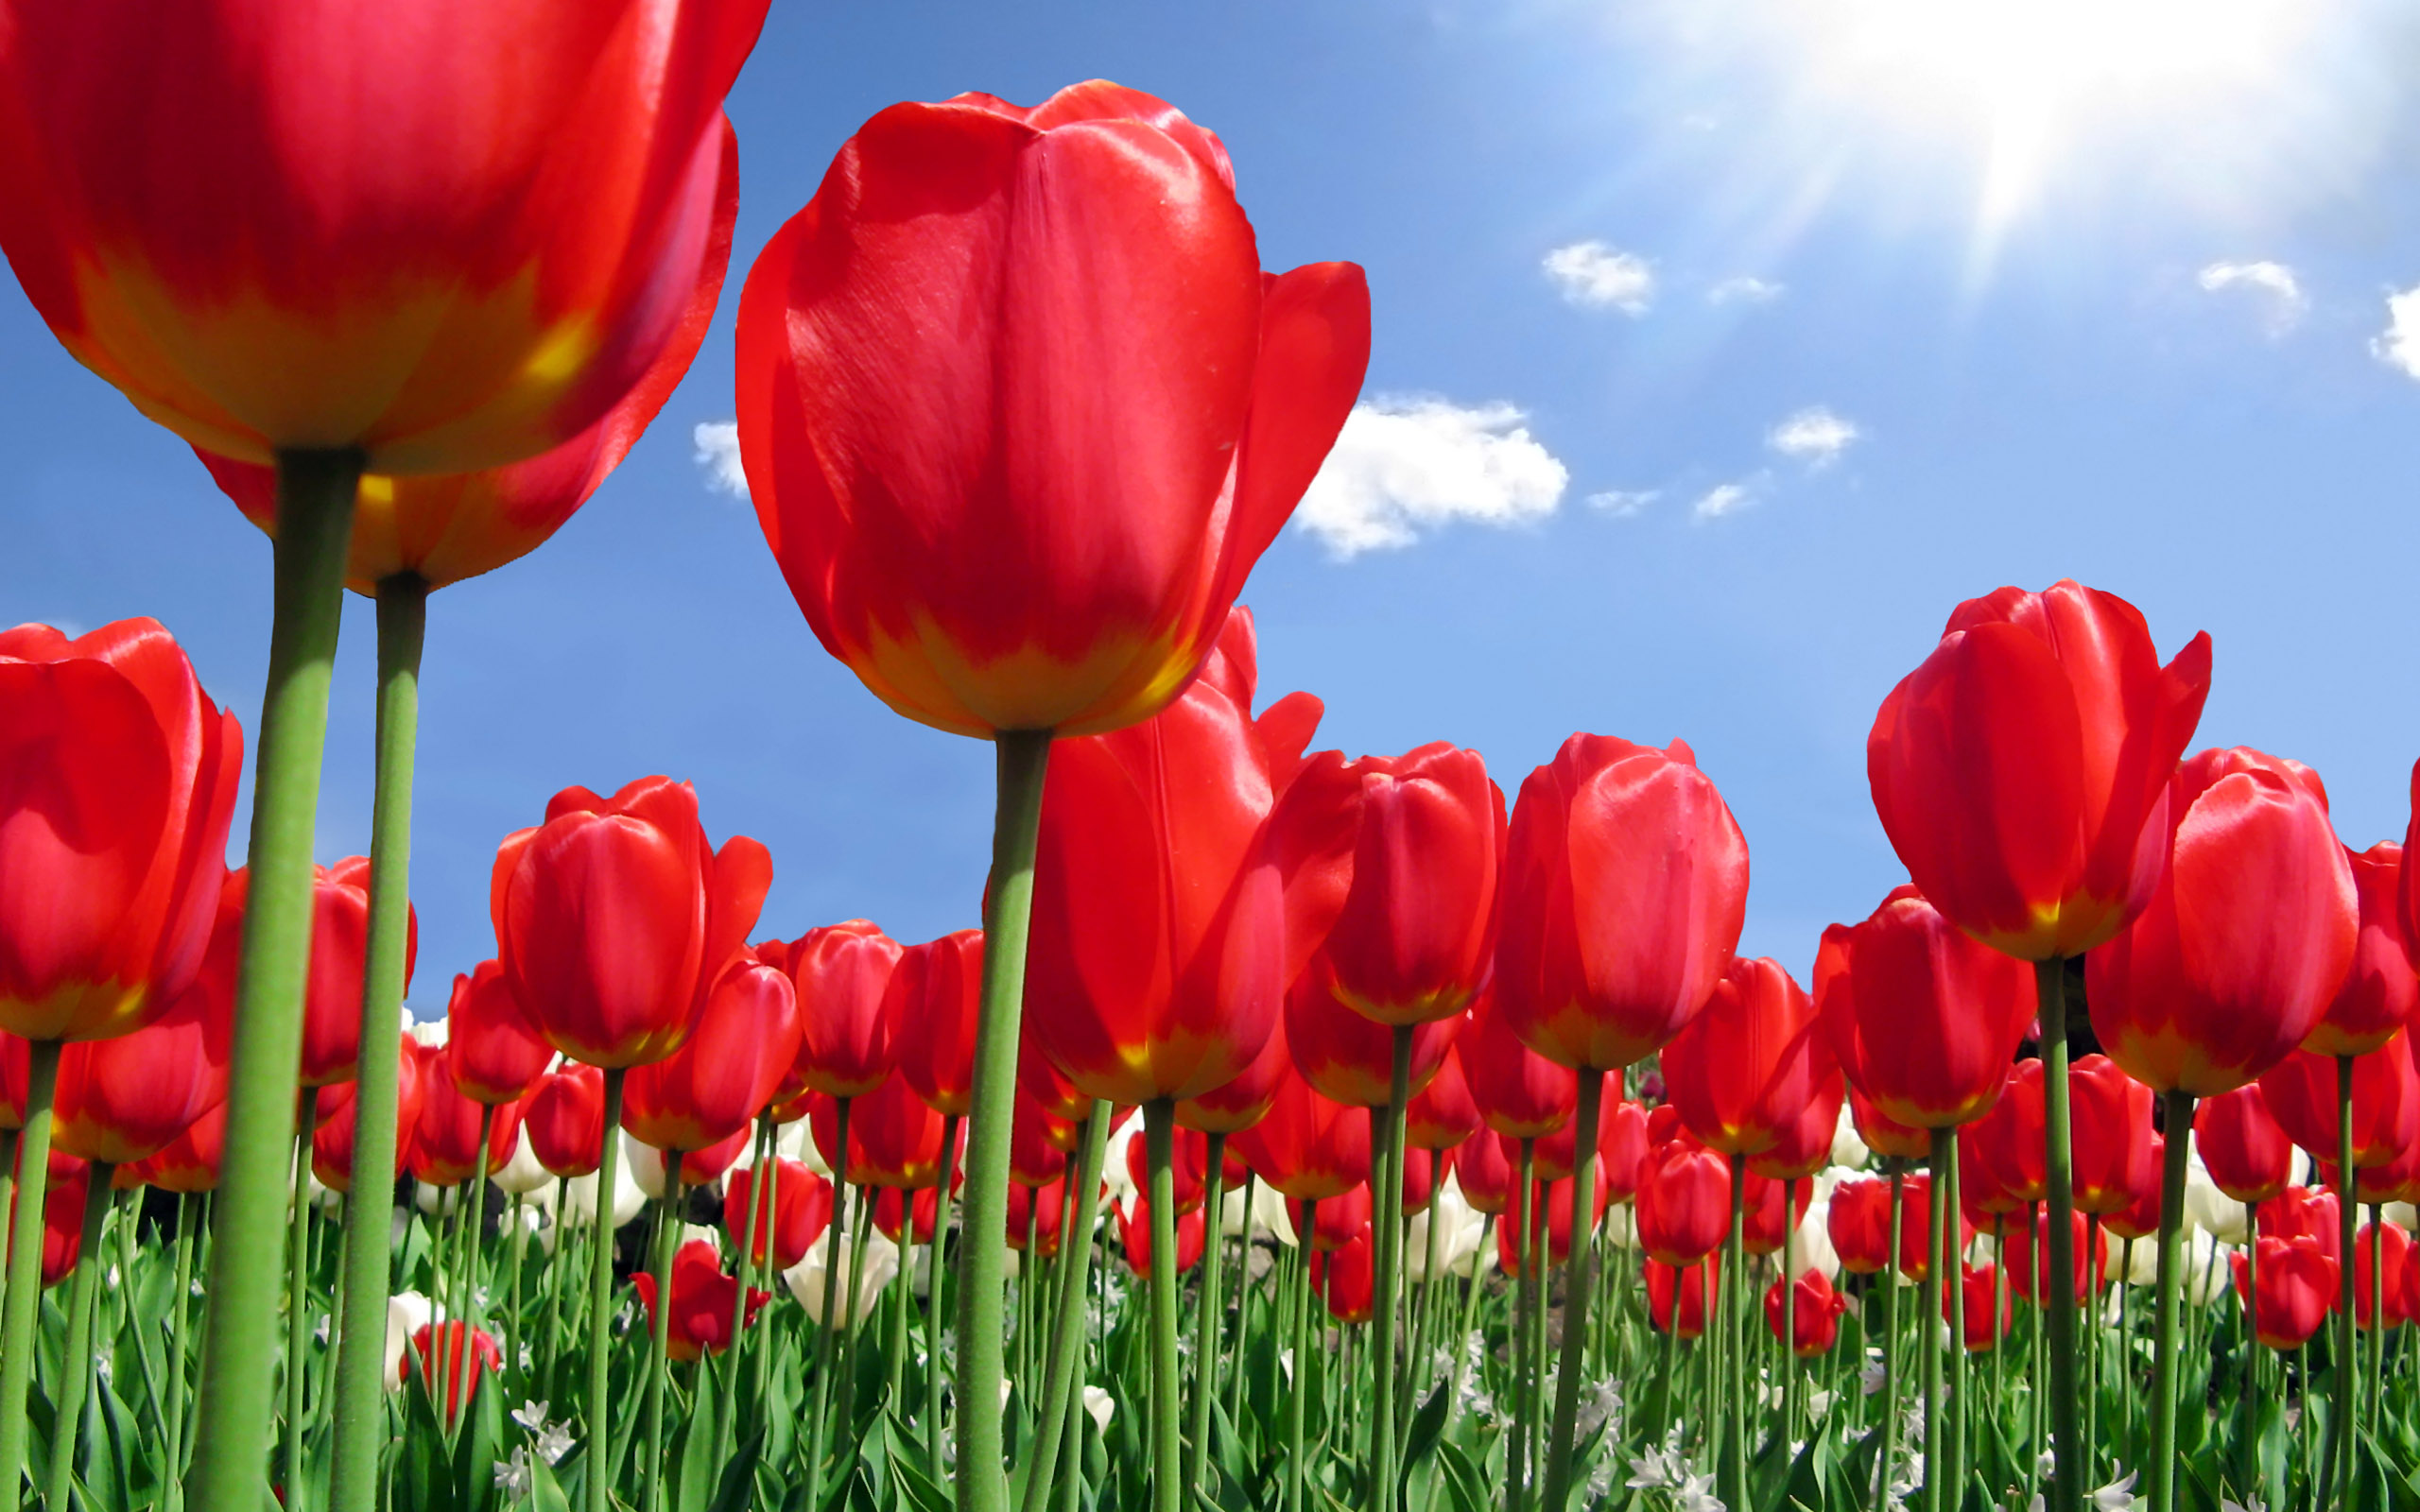 Red Tulip Flower Wallpaper Download for Desktop 2560x1600